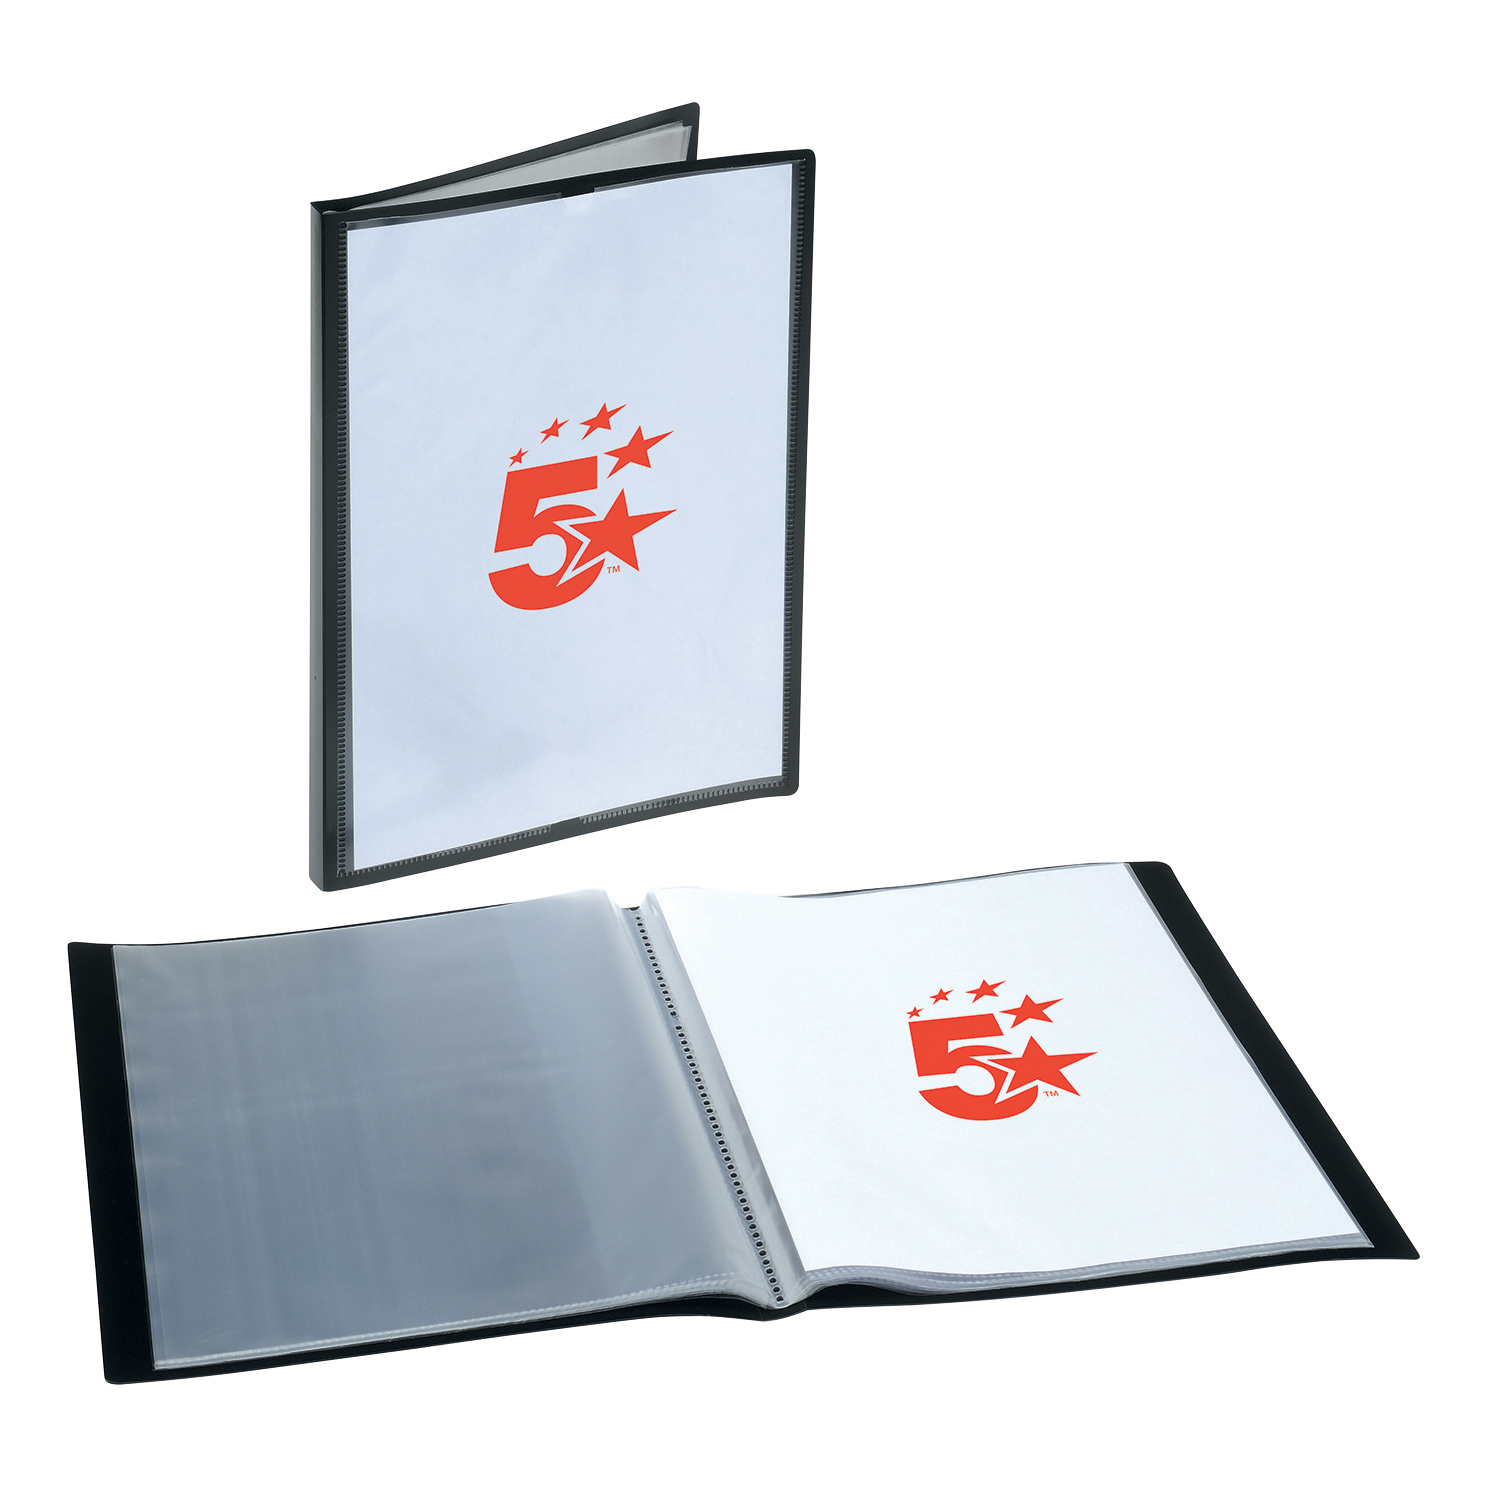 5 Star Office Display Book Personalisable Cover Polypropylene 20 Pockets A4 Black